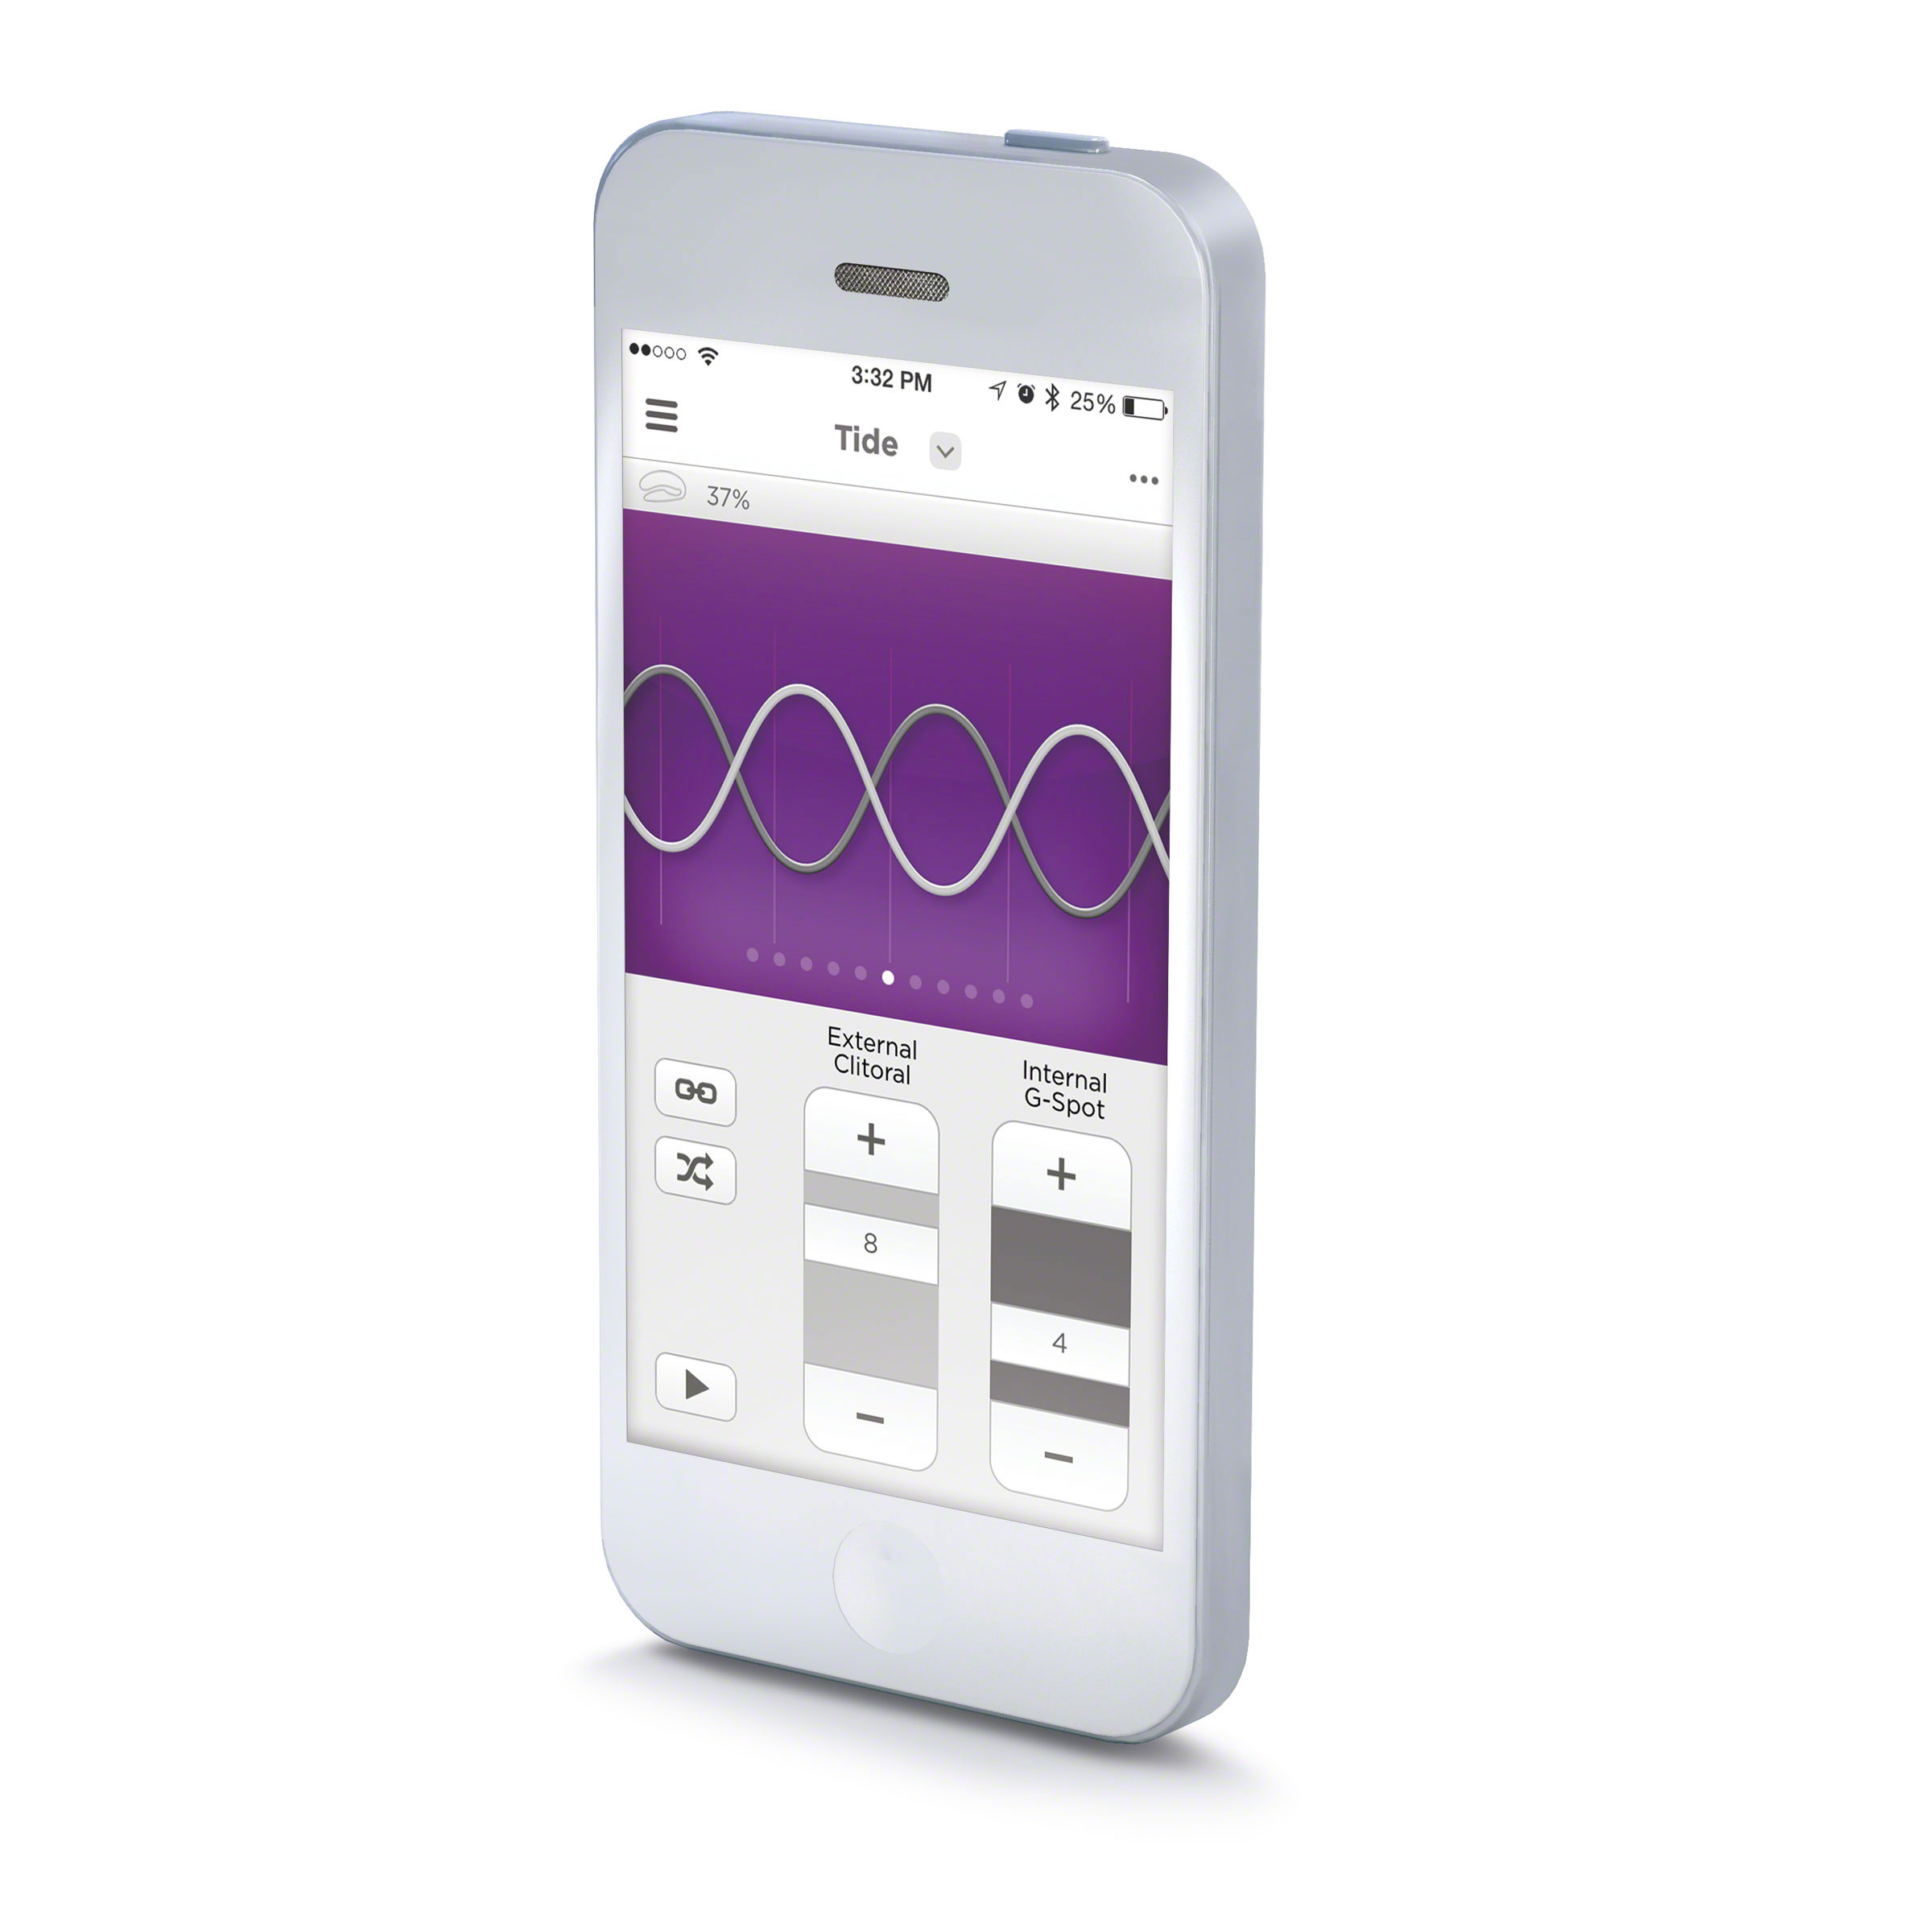 we-vibe-4-plus-couples-vibrator-app-control-screen.jpg